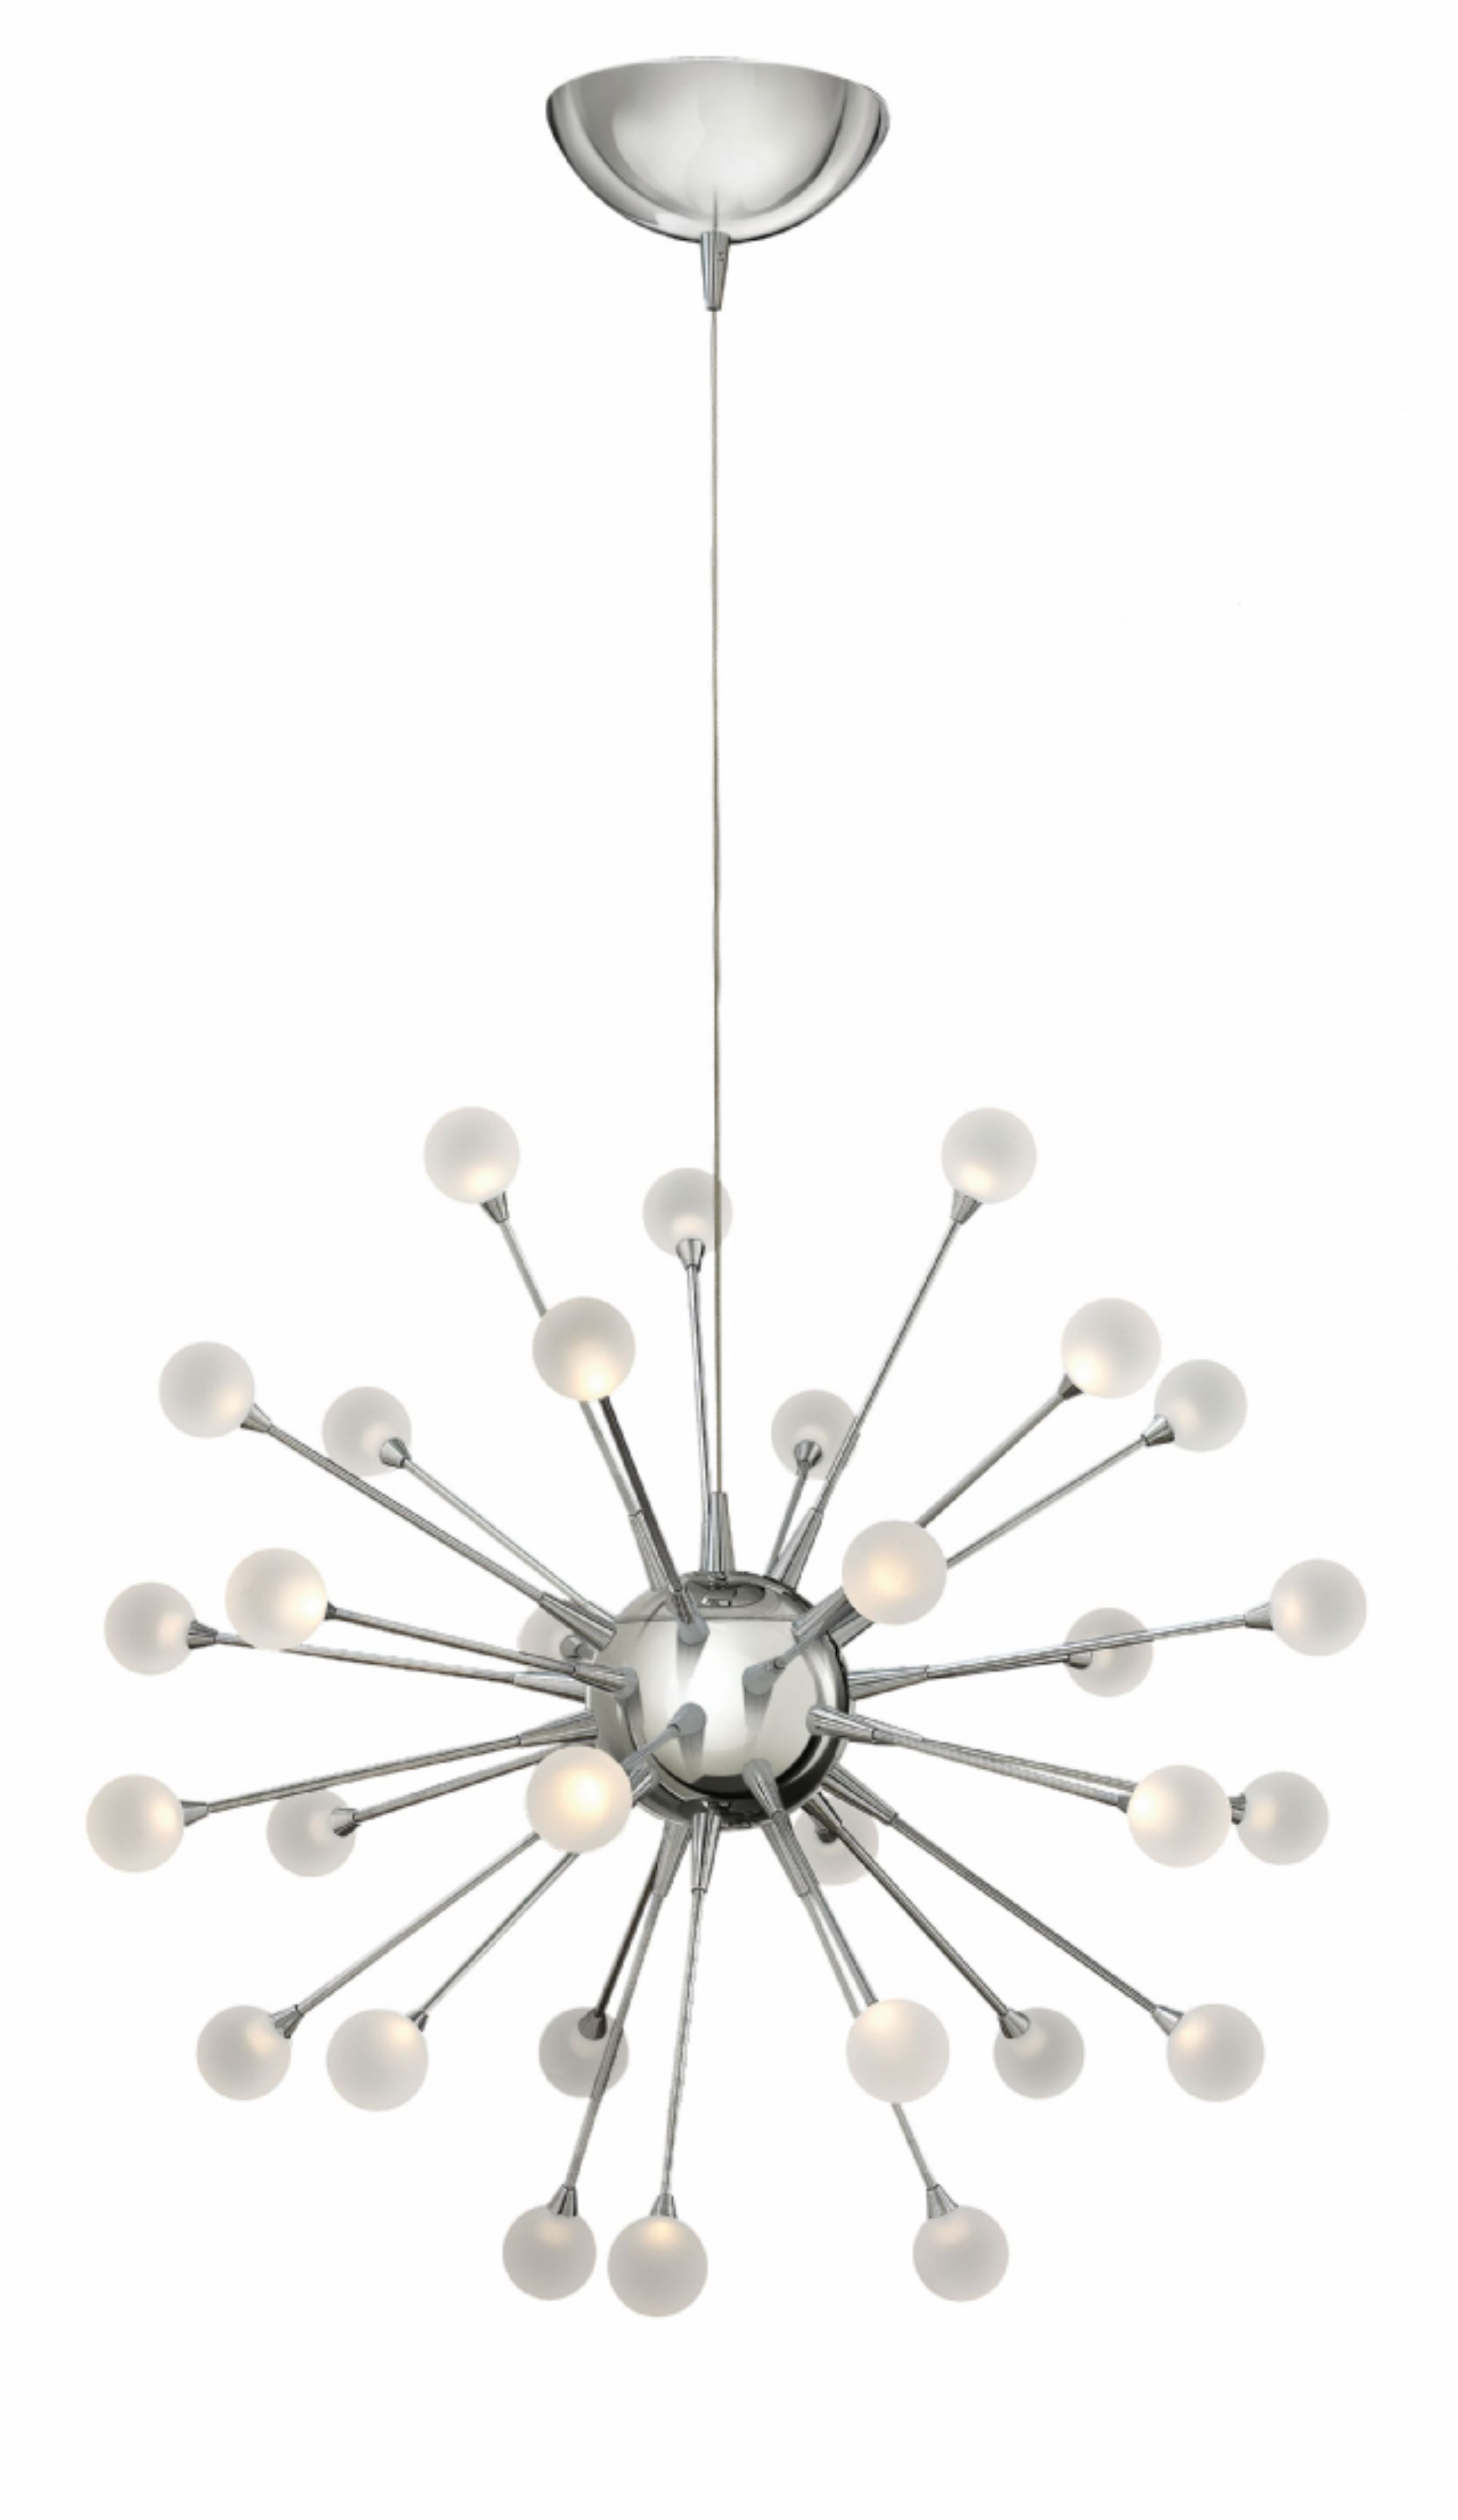 Hinkley Lighting carries many Polished Chrome Impulse Chandeliers